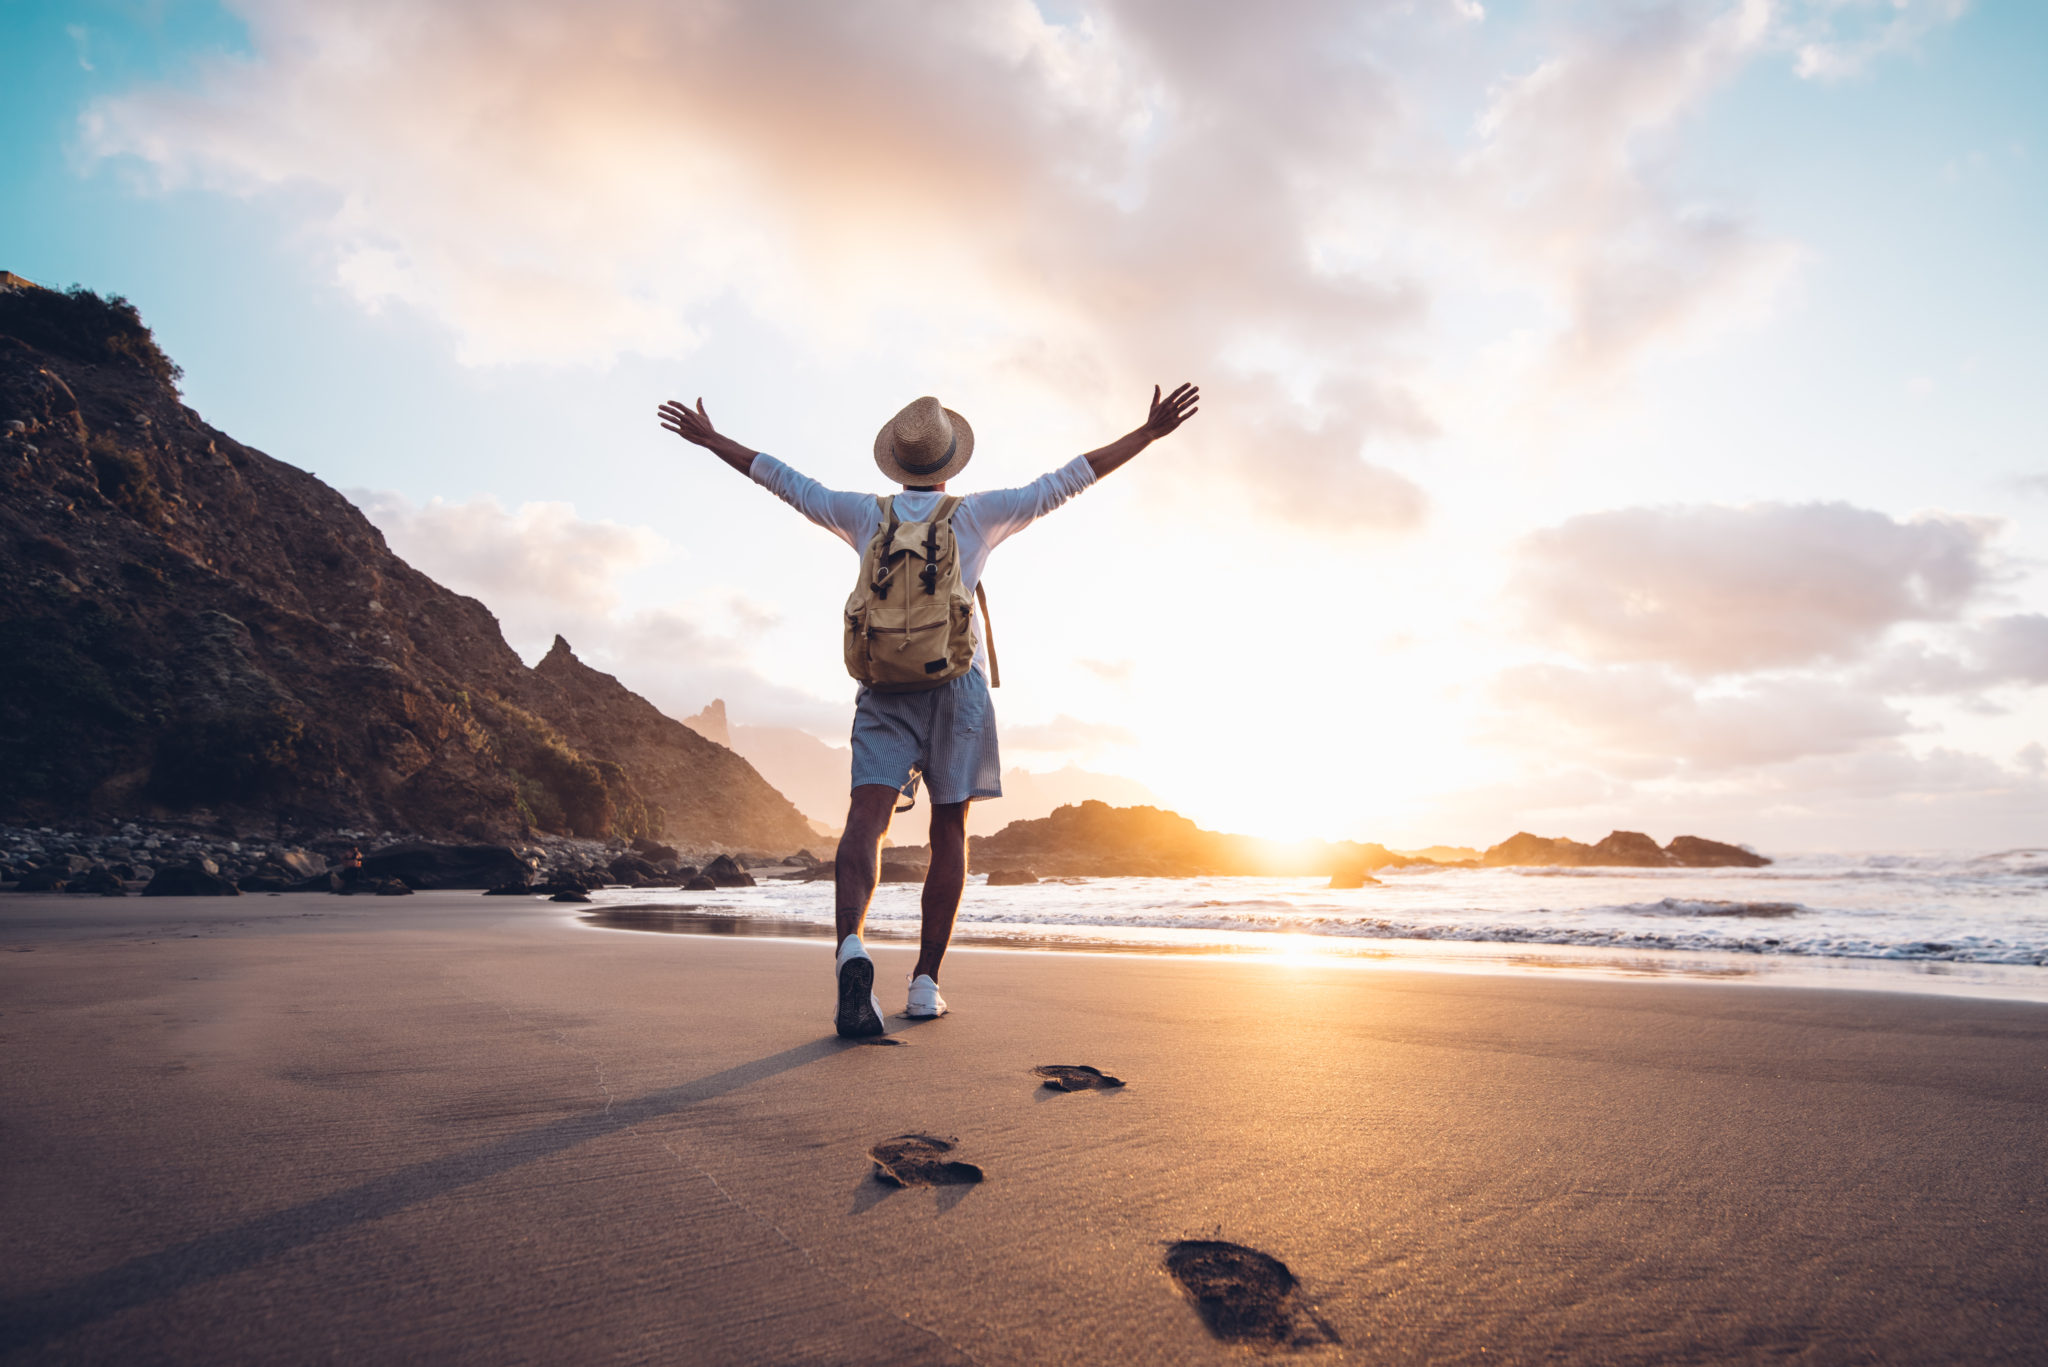 young,man,arms,outstretched,by,the,sea,at,sunrise,enjoying